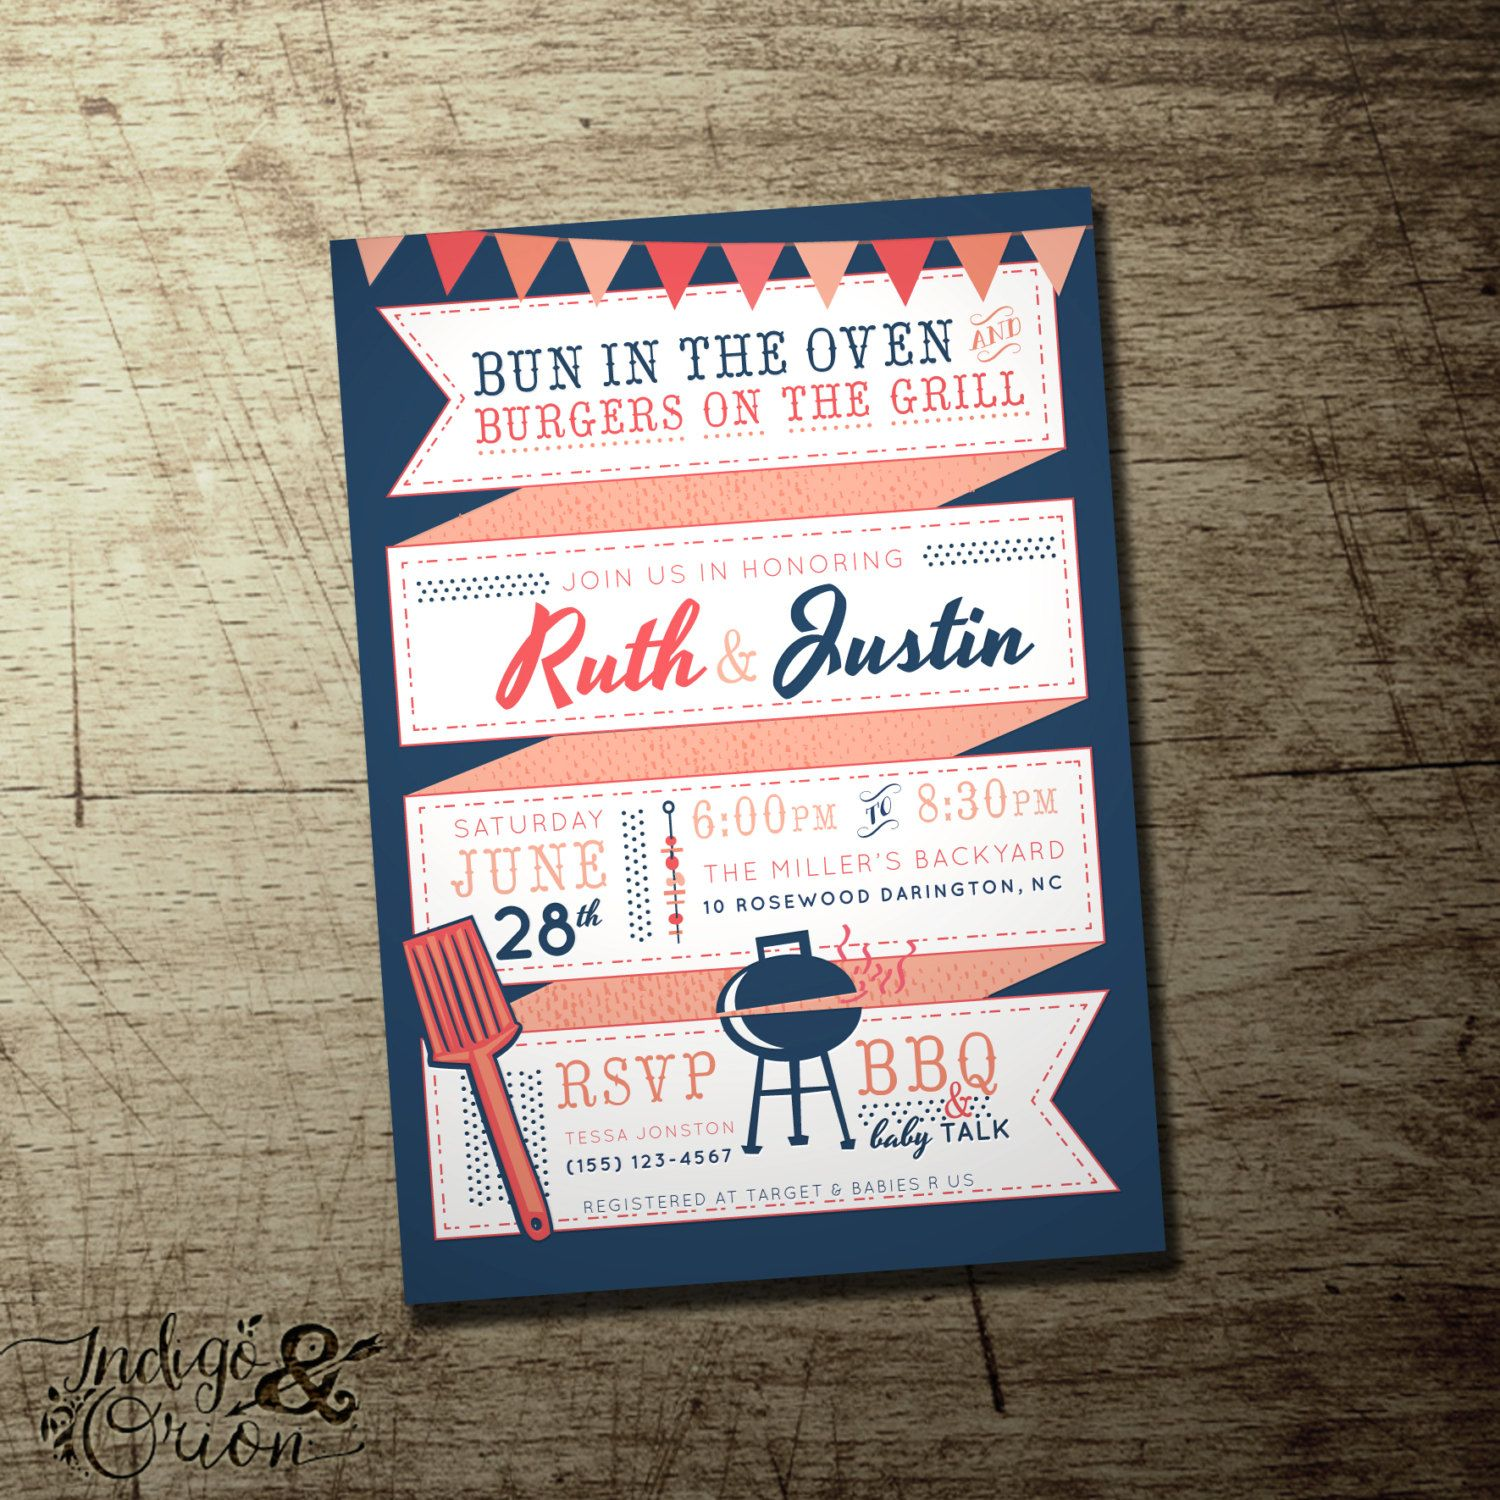 Couples Bbq Baby Shower Invitation Bun In The Oven Burgers